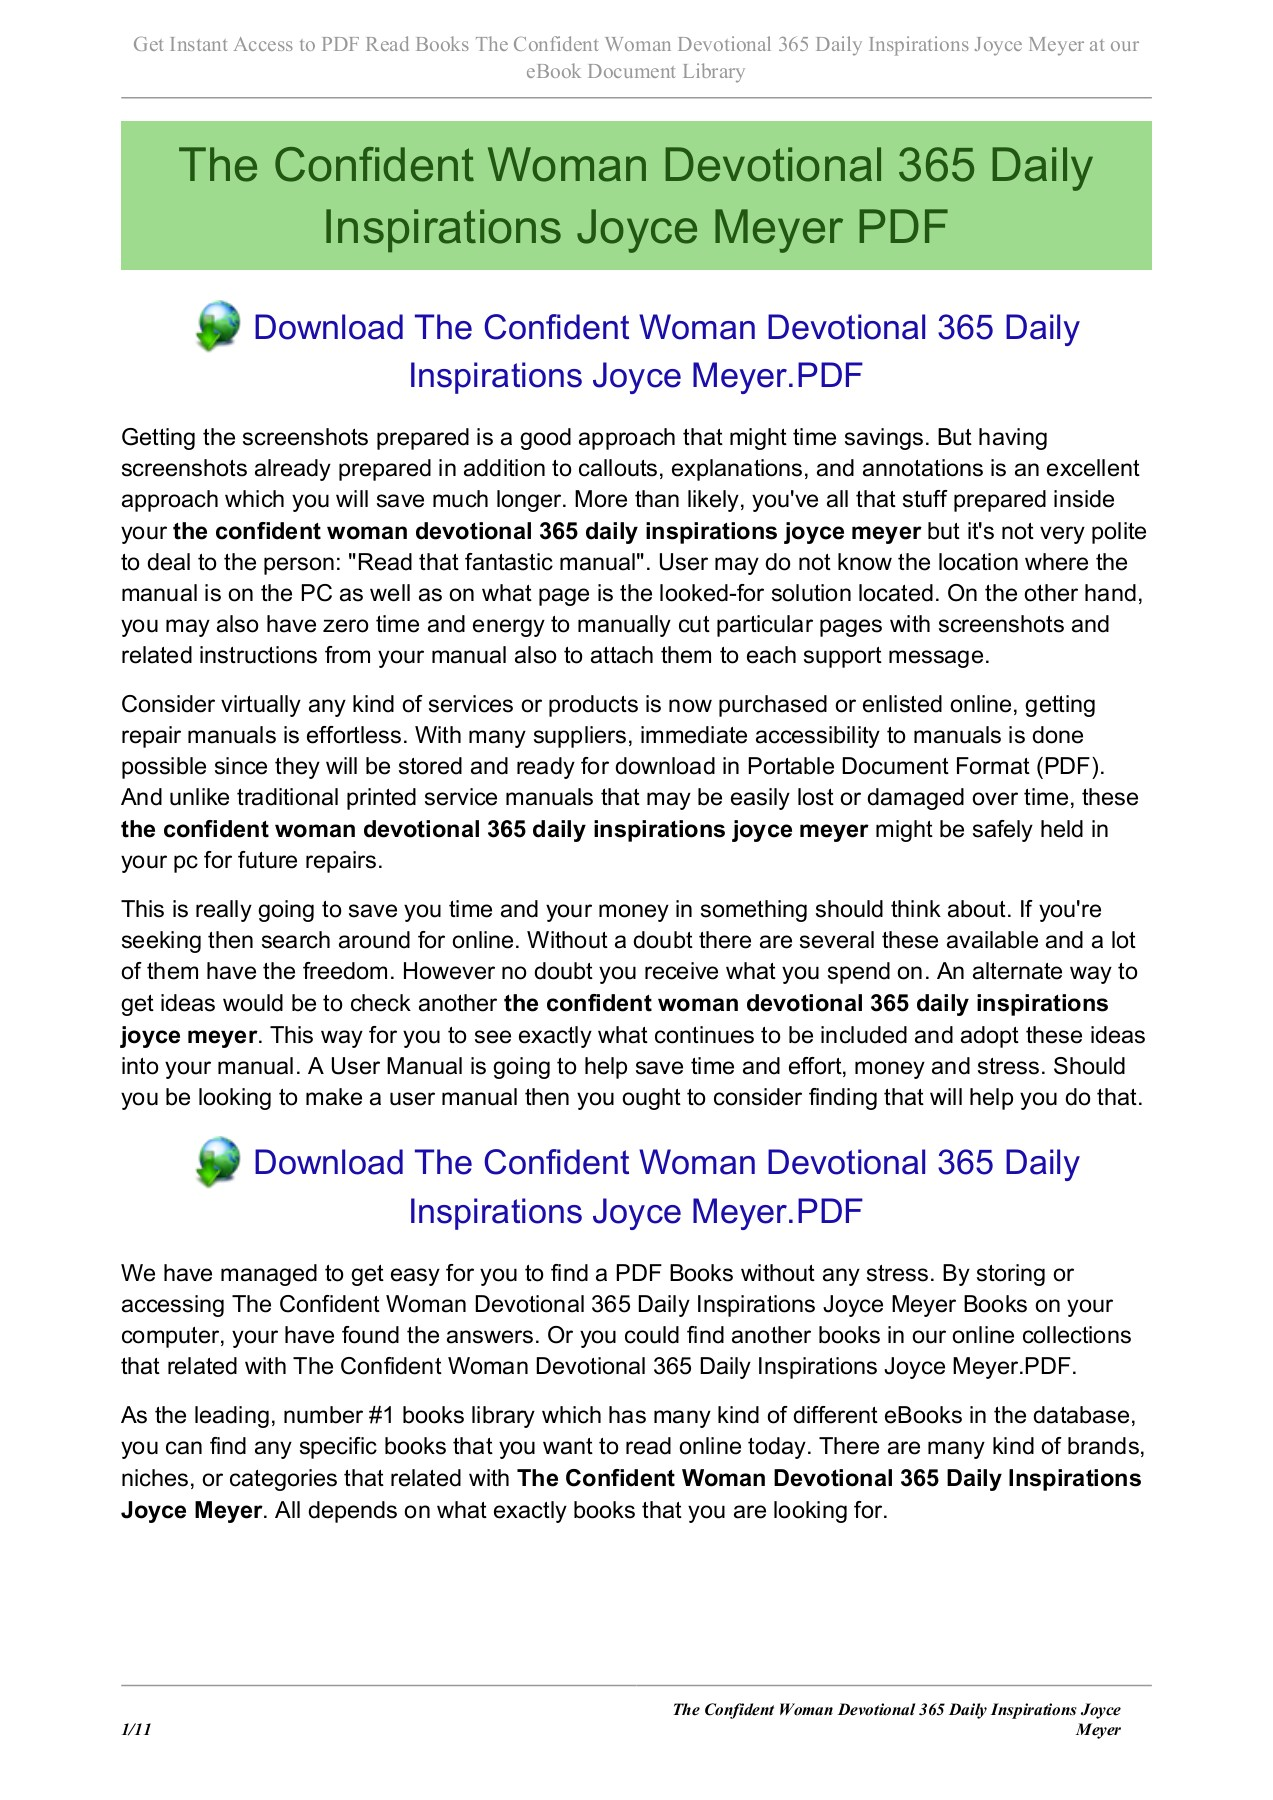 The Confident Woman Devotional 365 Daily Inspirations